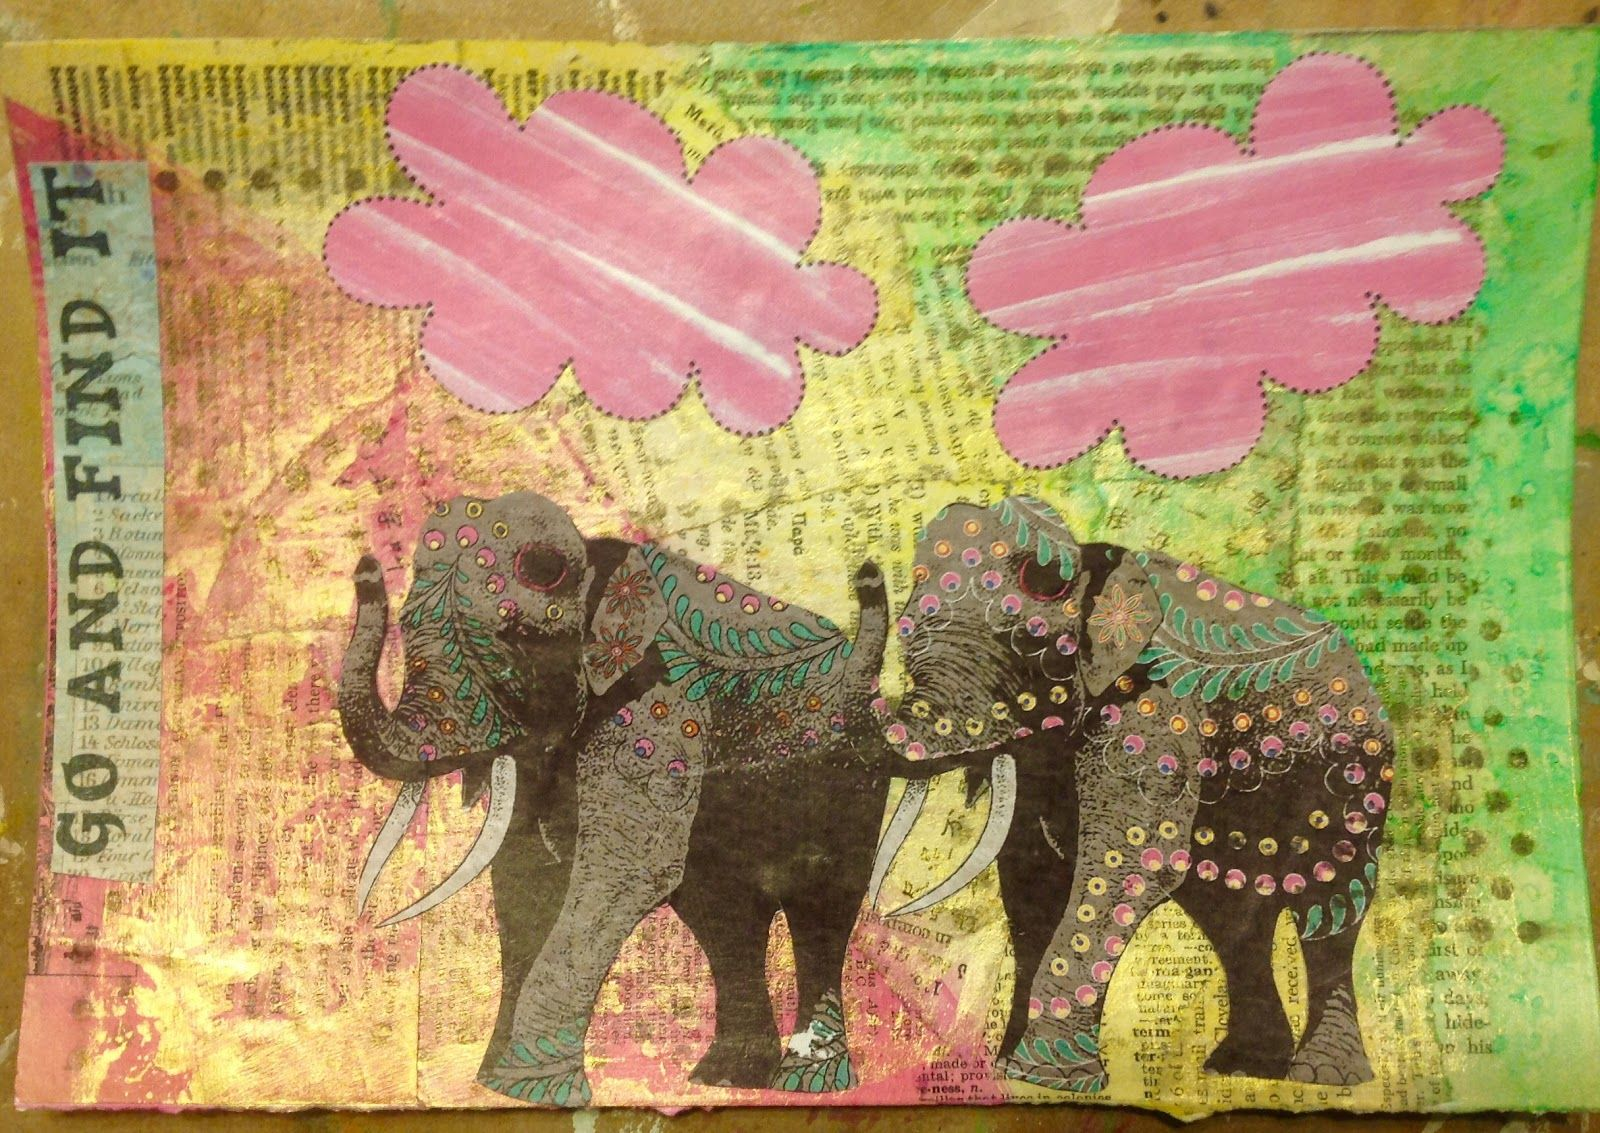 Mixed-Media Backgrounds No. 3 by Jan - Emporium Deliveries February 2016 - The Art Journal Emporium